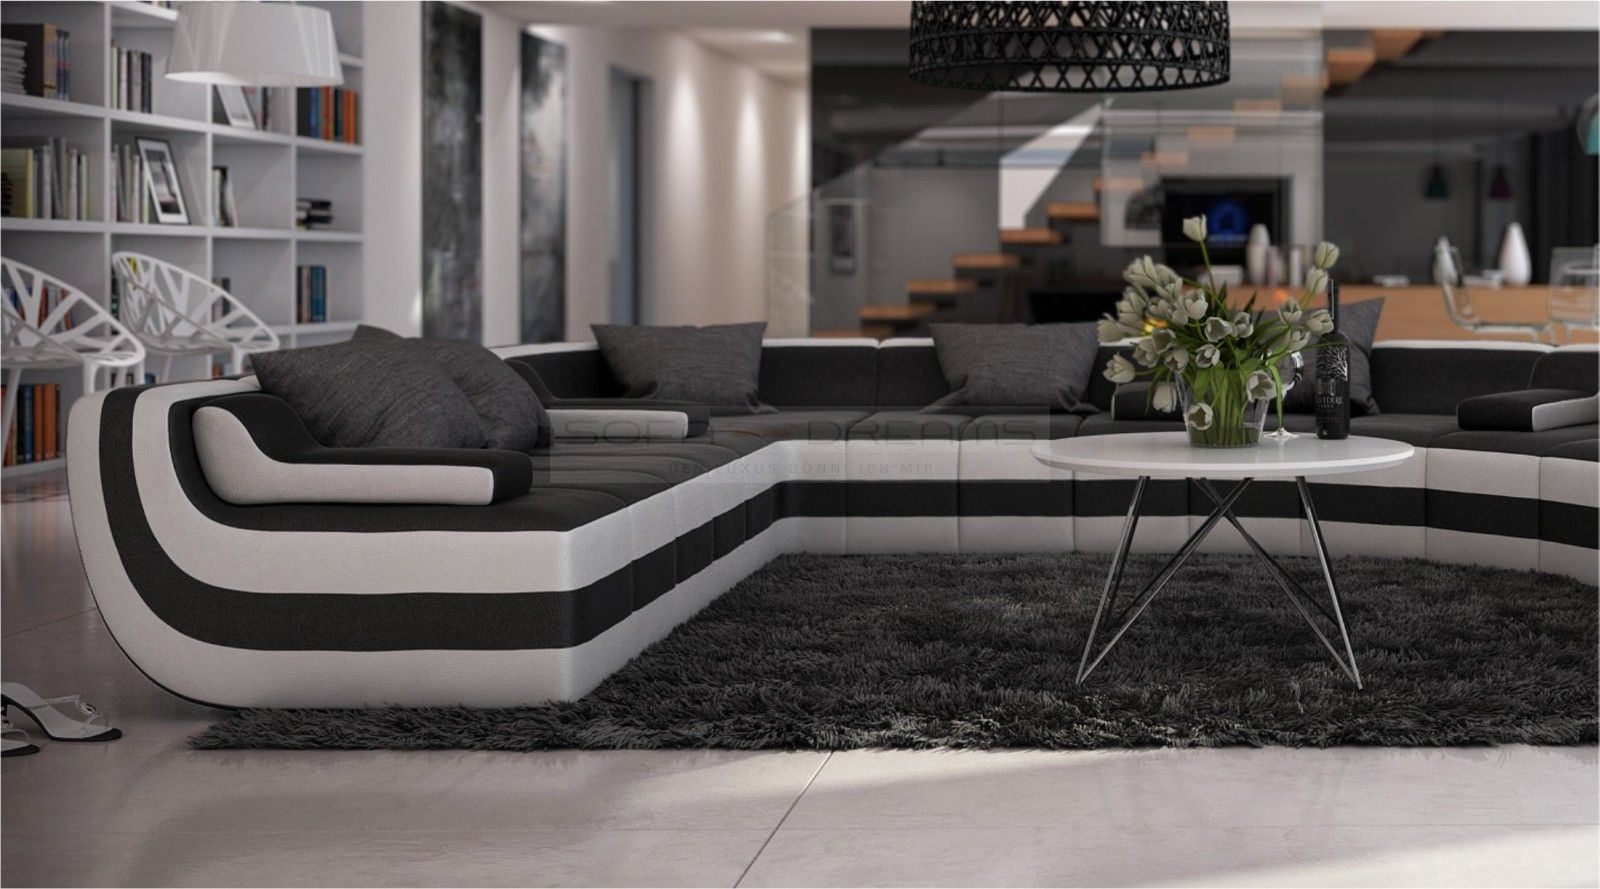 rundsofa u form loungesofa tissera wohnlandschaft design eckcouch ebay. Black Bedroom Furniture Sets. Home Design Ideas